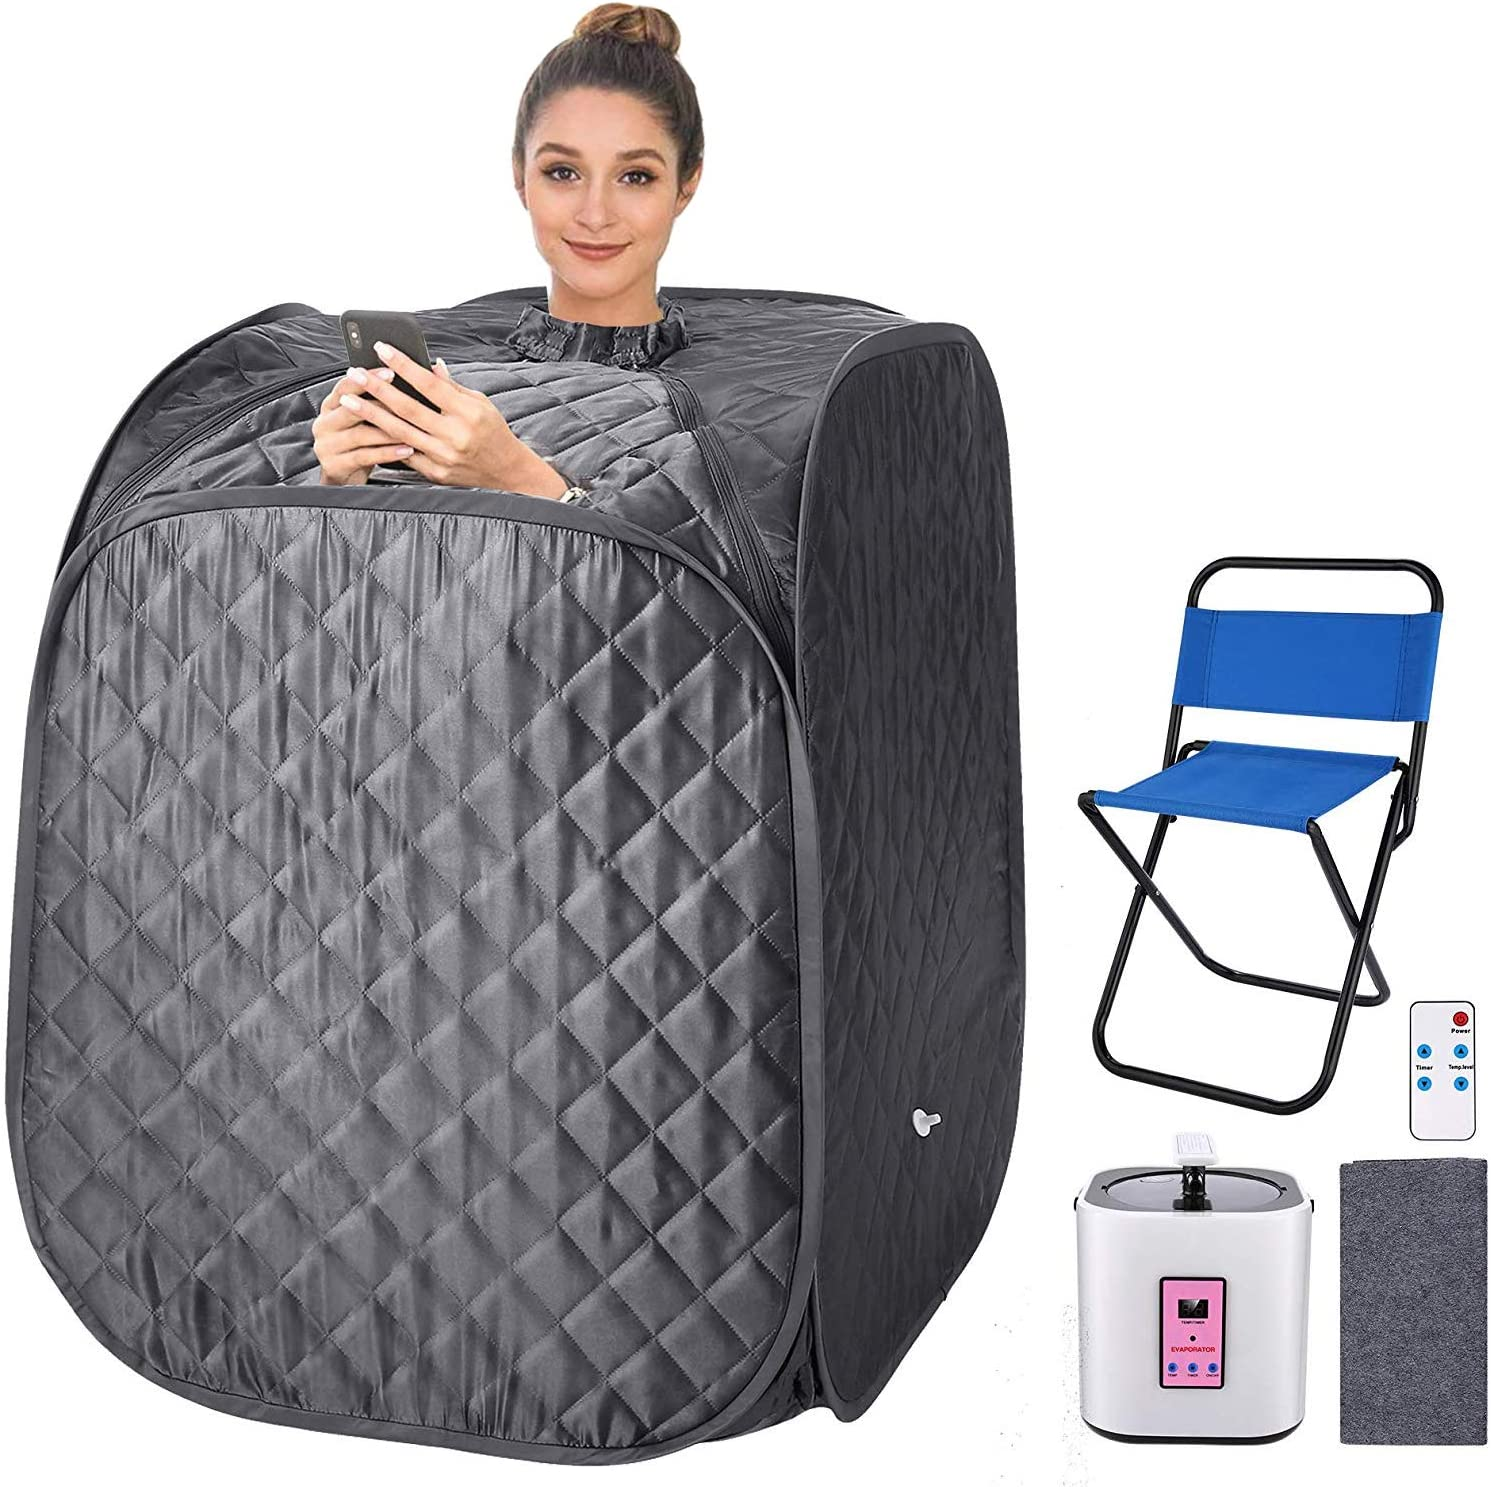 pardise Portable Personal Sauna 2L Home Steam Sauna Tent Folding Indoor Sauna Spa with Remote Control, Timer, Foldable Chair (Gray)